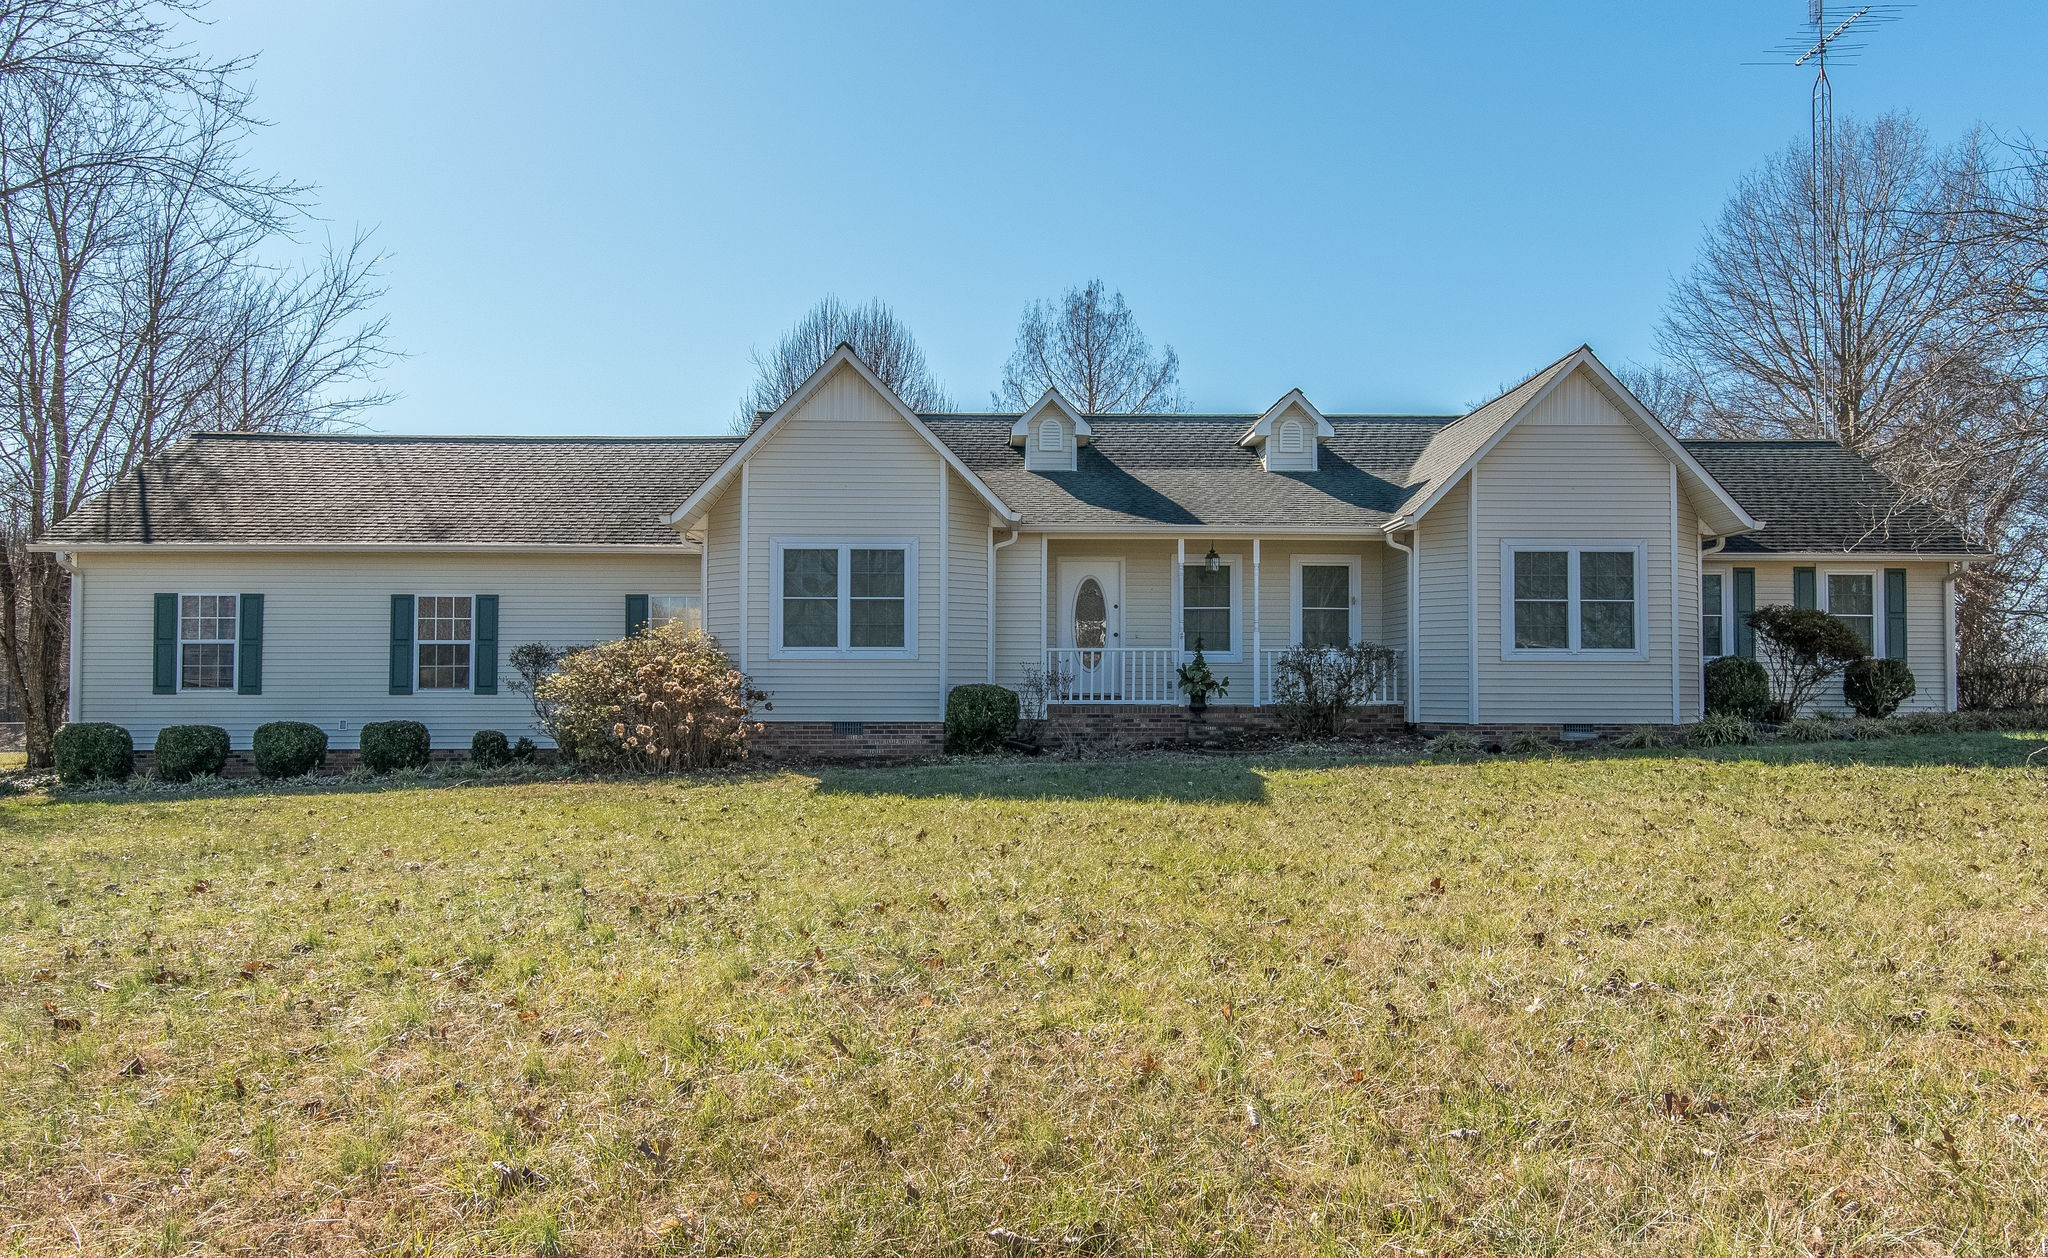 2251 Granddaddy Rd, Lawrenceburg, TN 38464 - Lawrenceburg, TN real estate listing